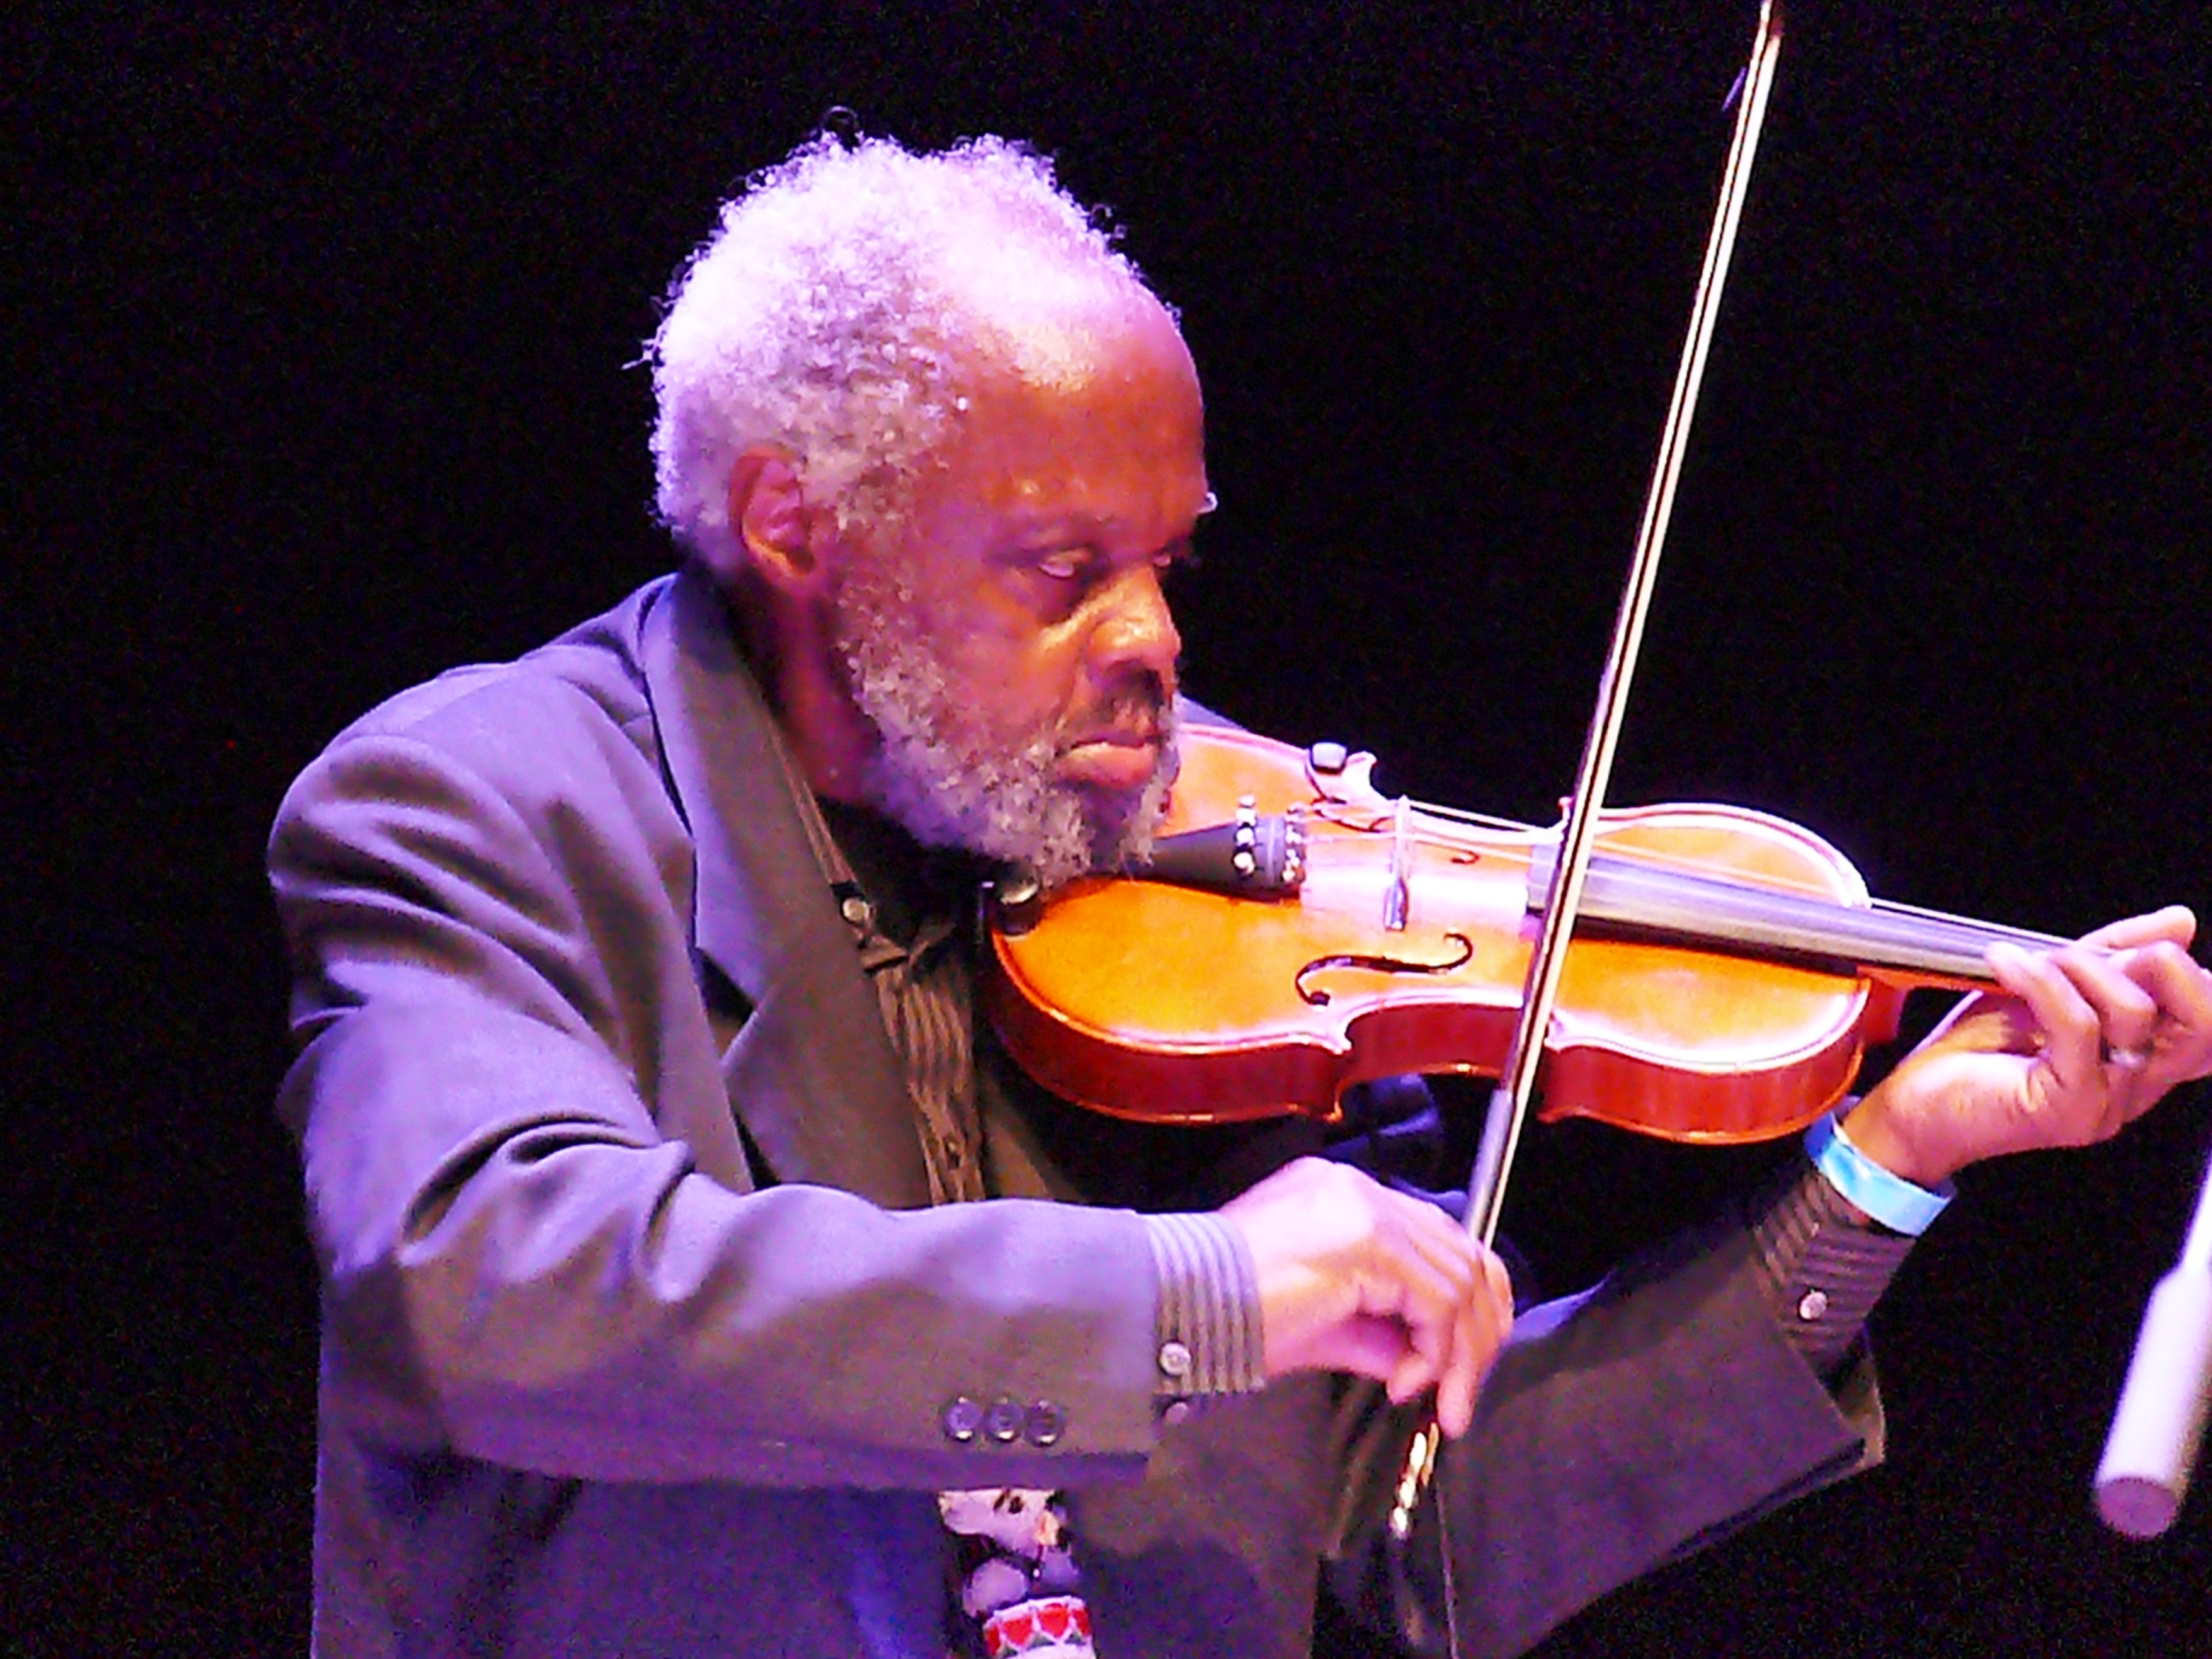 Henry grimes at the vision festival, new york in june 2013